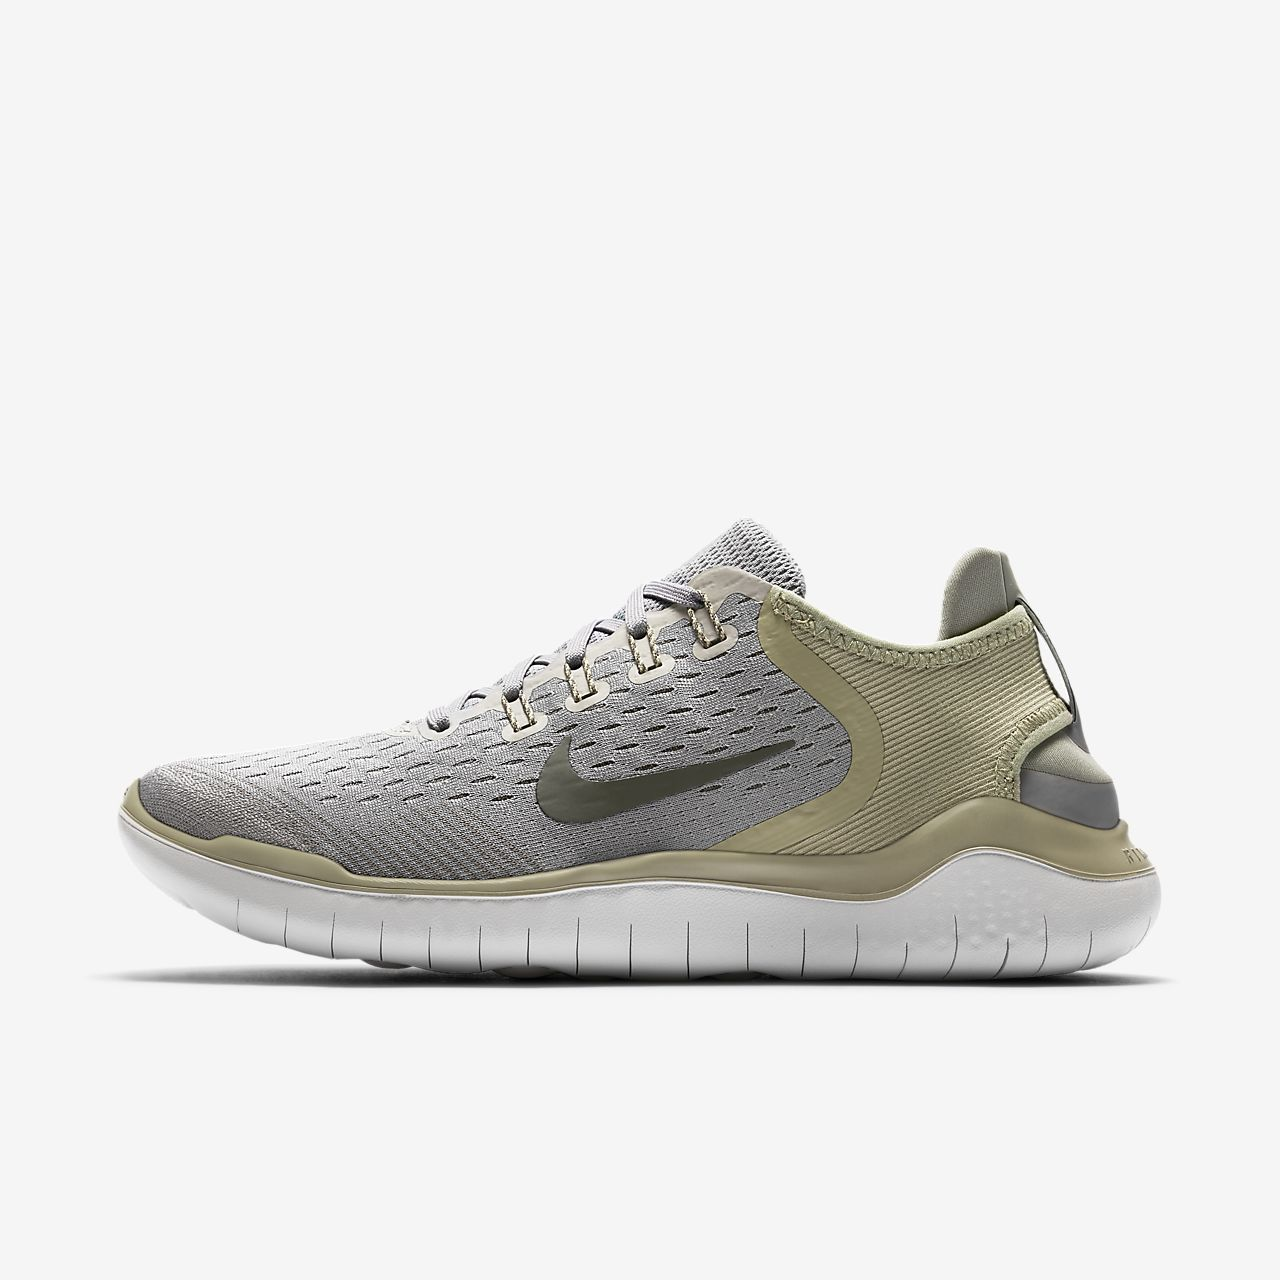 Nike Free RN 2018 Women's Running Shoe